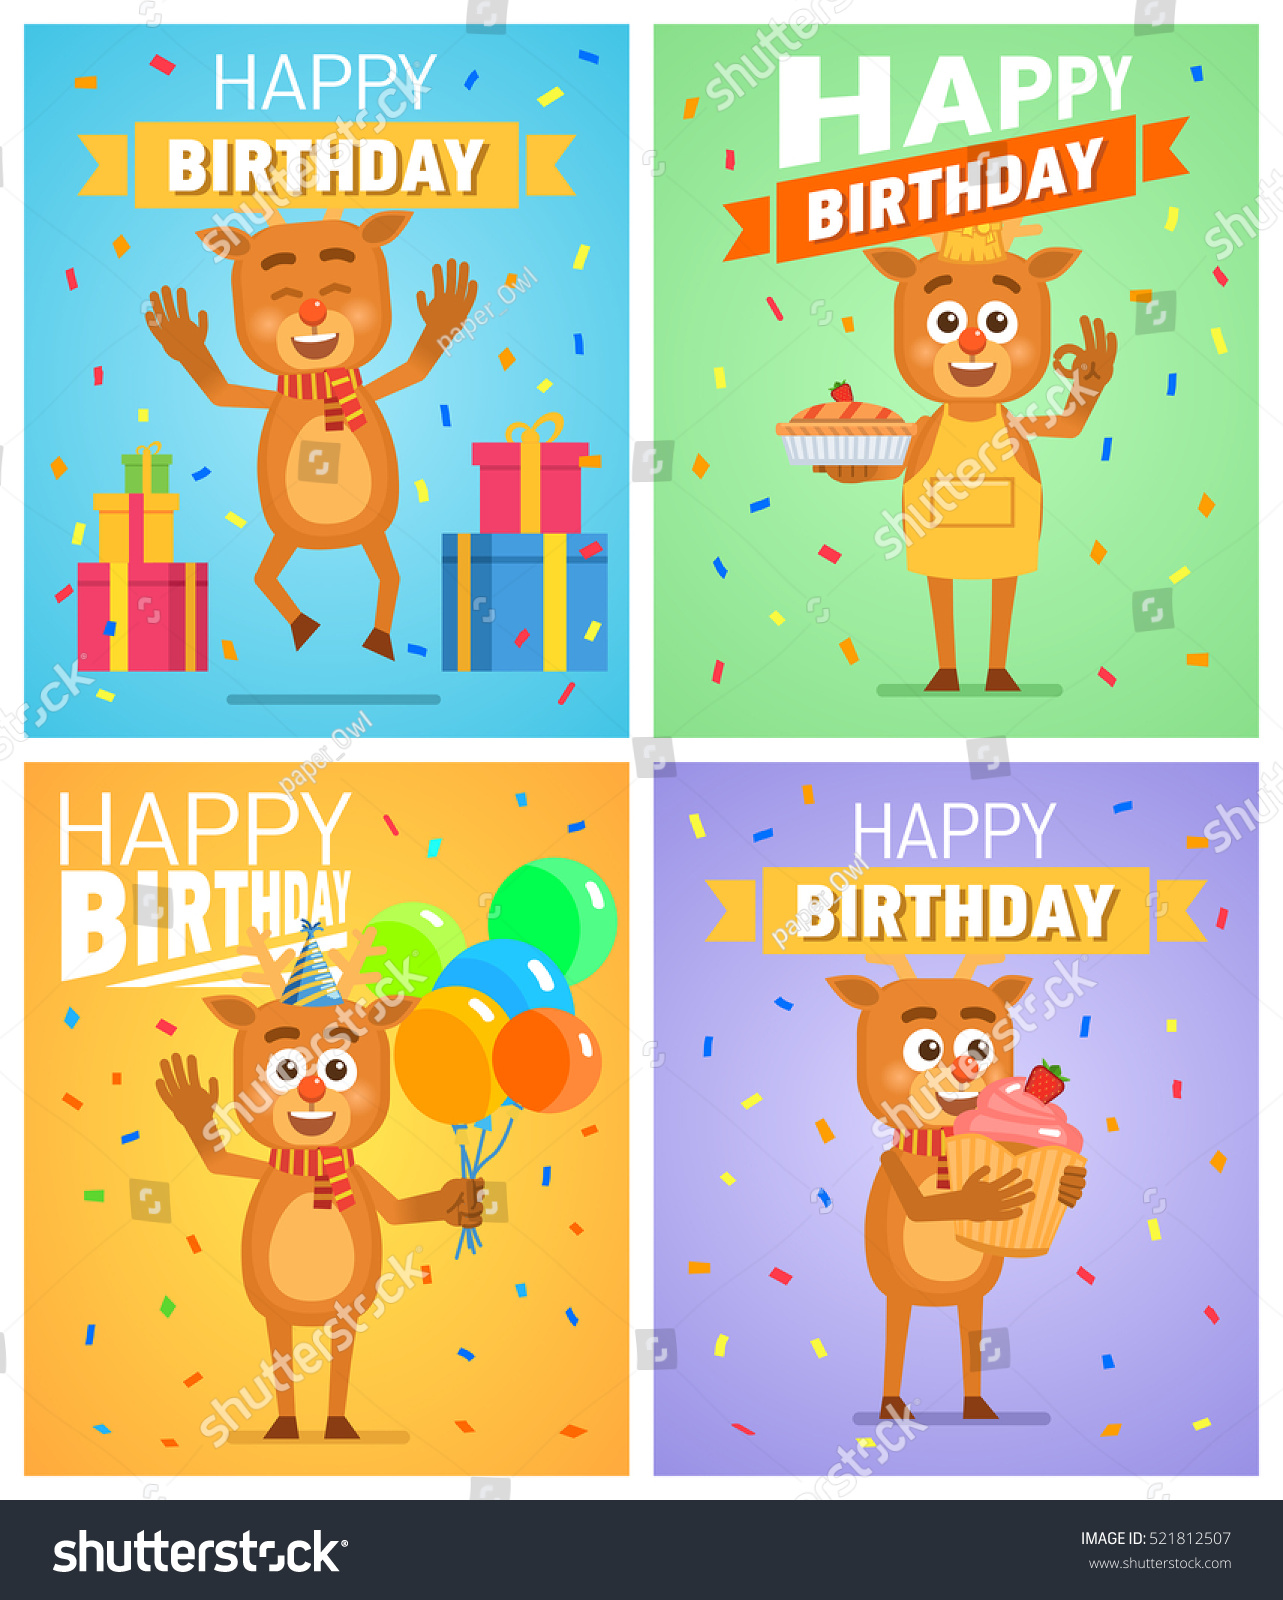 picture posters for birthday ; stock-vector-set-of-different-birthday-posters-birthday-greeting-card-placard-cheerful-reindeer-holding-521812507